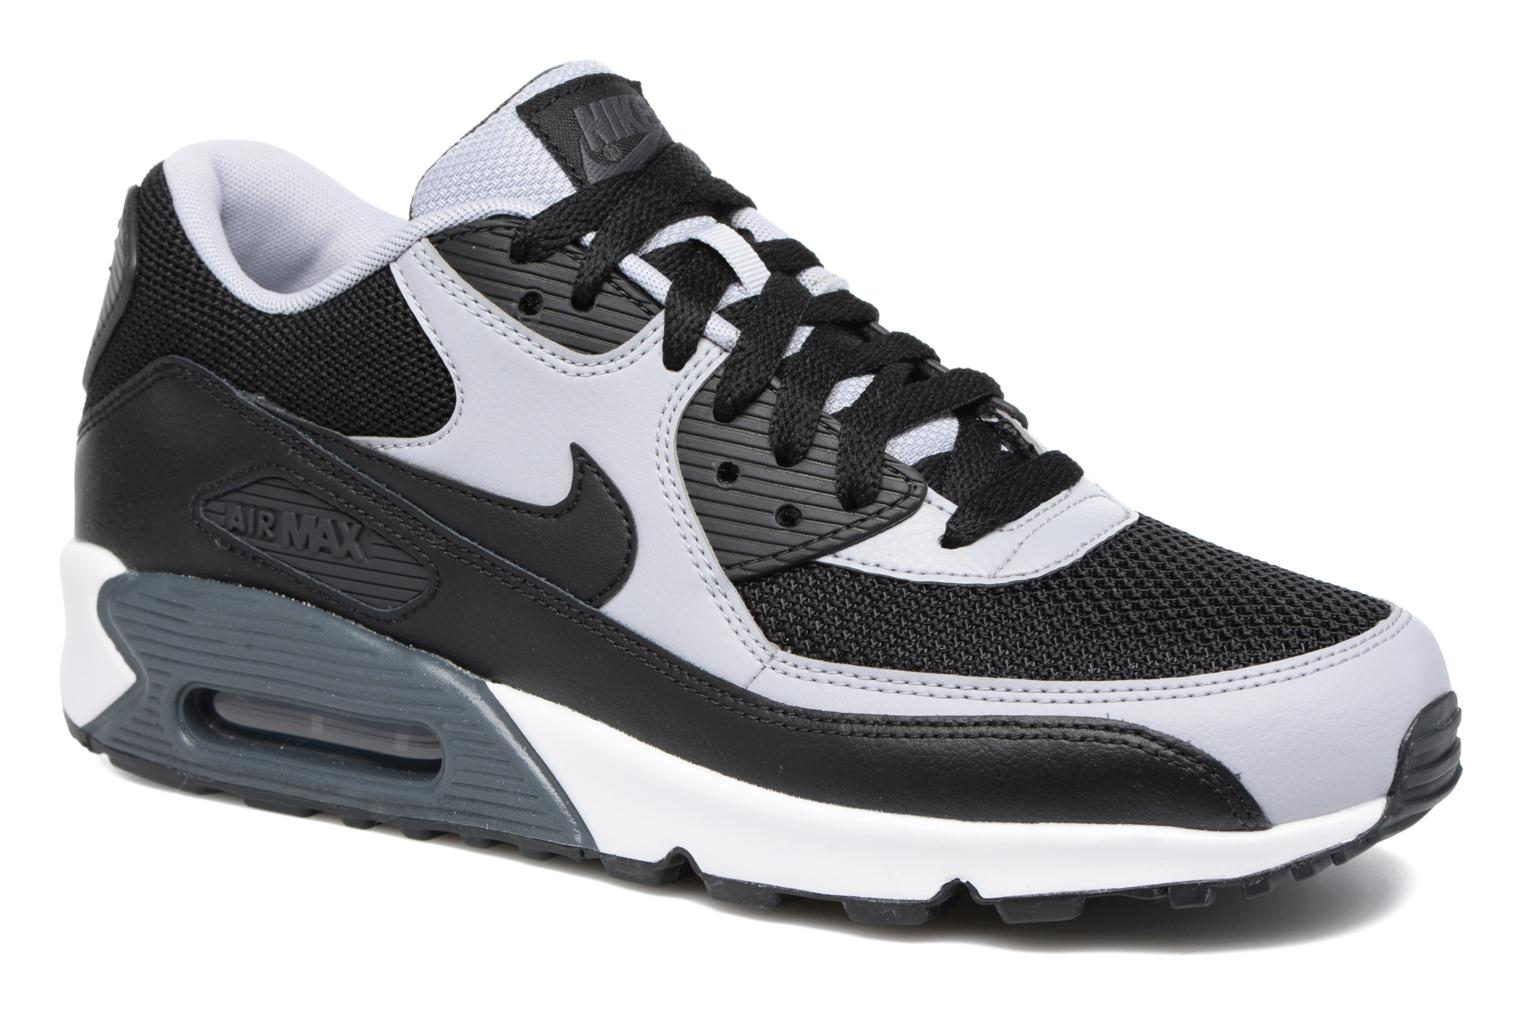 Nike Air Max 90 Essential BLACK/BLACK-WOLF GREY-ANTHRACITE